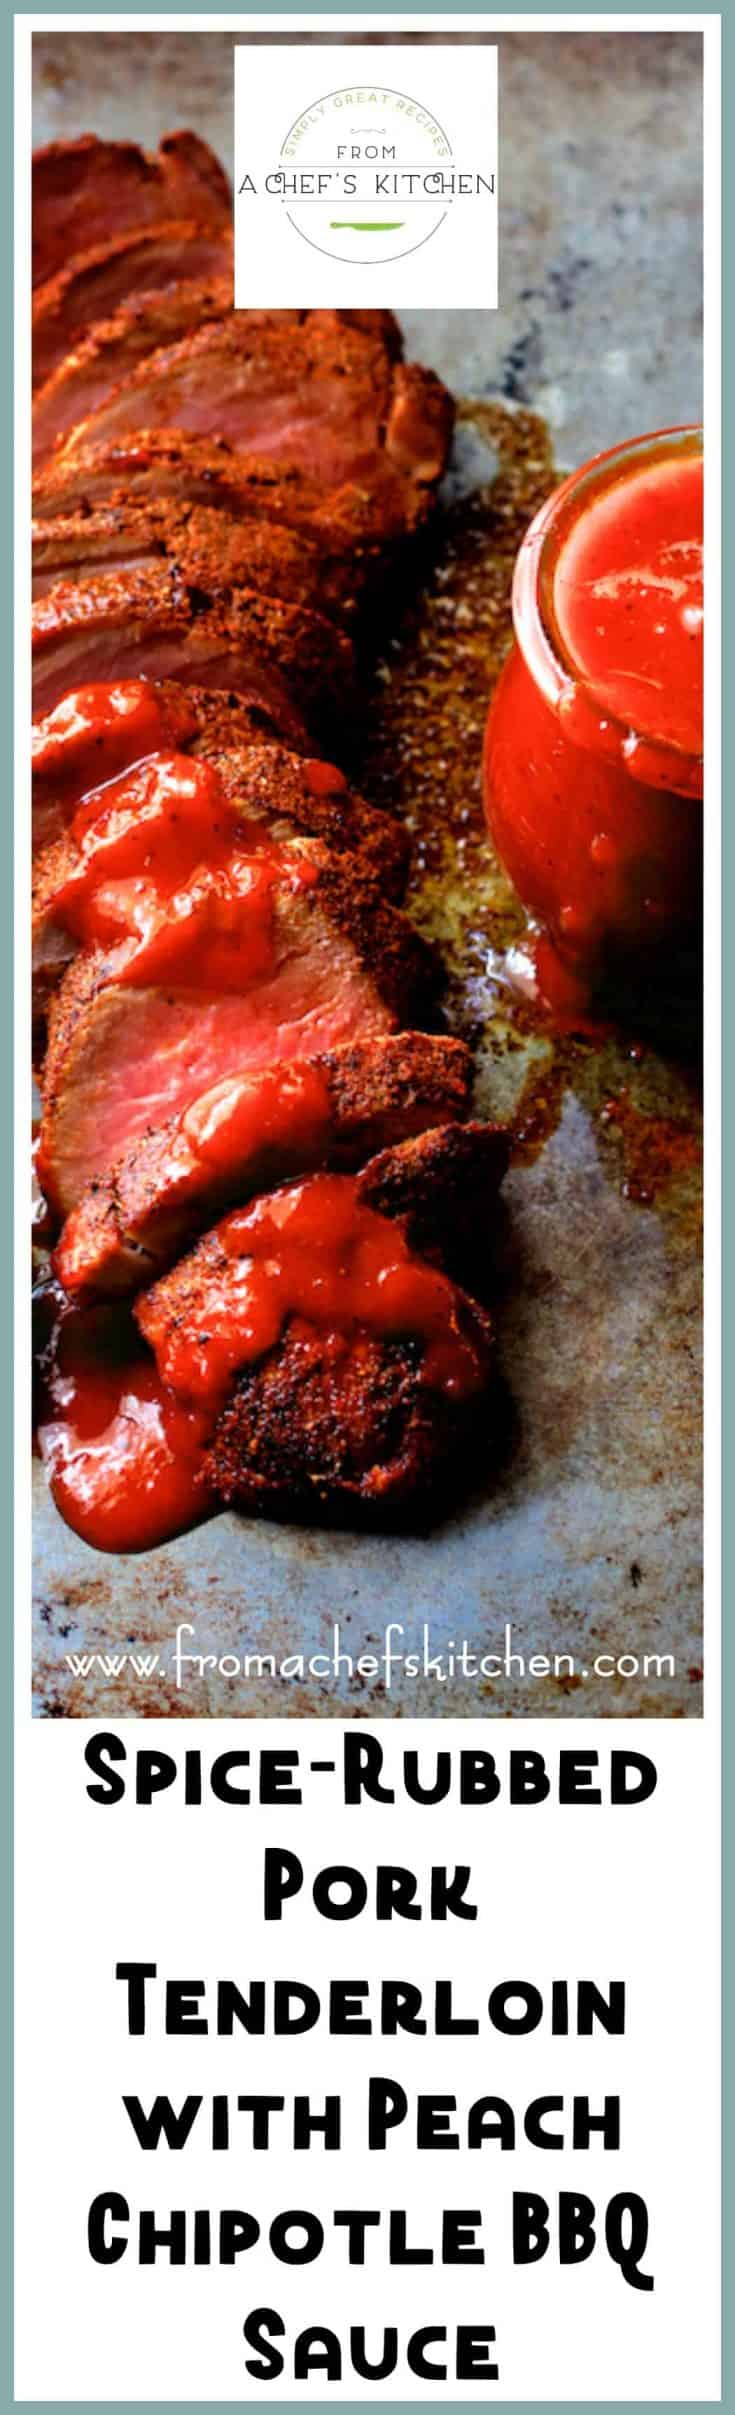 Spice Rubbed Pork Tenderloin with Peach Chipotle Barbecue Sauce is spicy, sweet and smoky!  This delicious dry rub is great on any cut of pork. #porktenderloin #pork #porkchop #peach #chipotle #barbecue #barbecuesauce